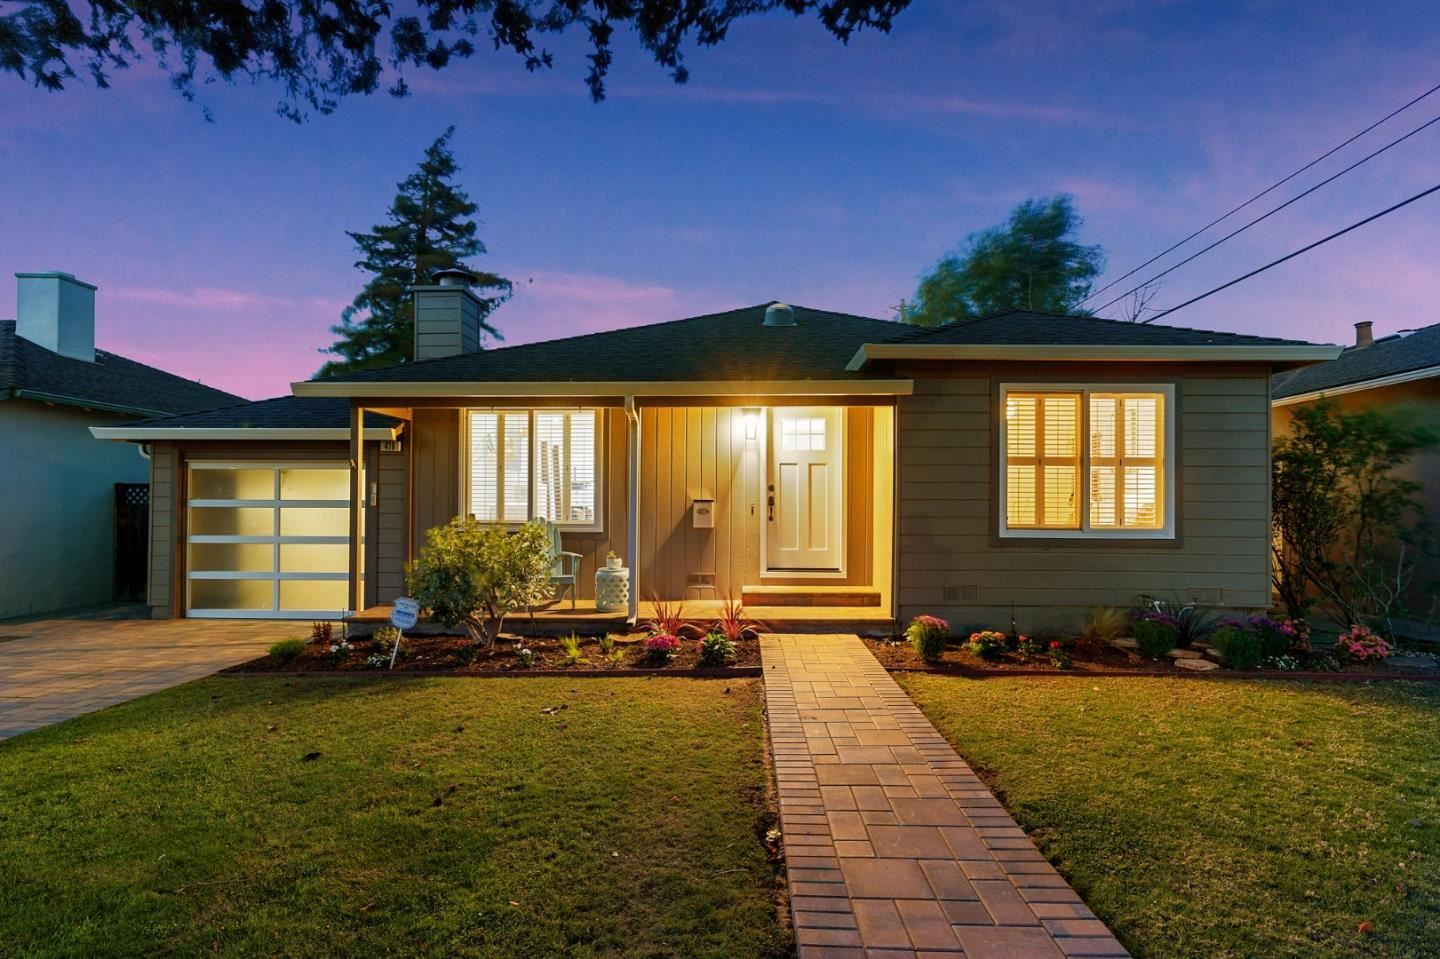 Photo for 418 Dwight RD, BURLINGAME, CA 94010 (MLS # ML81835650)